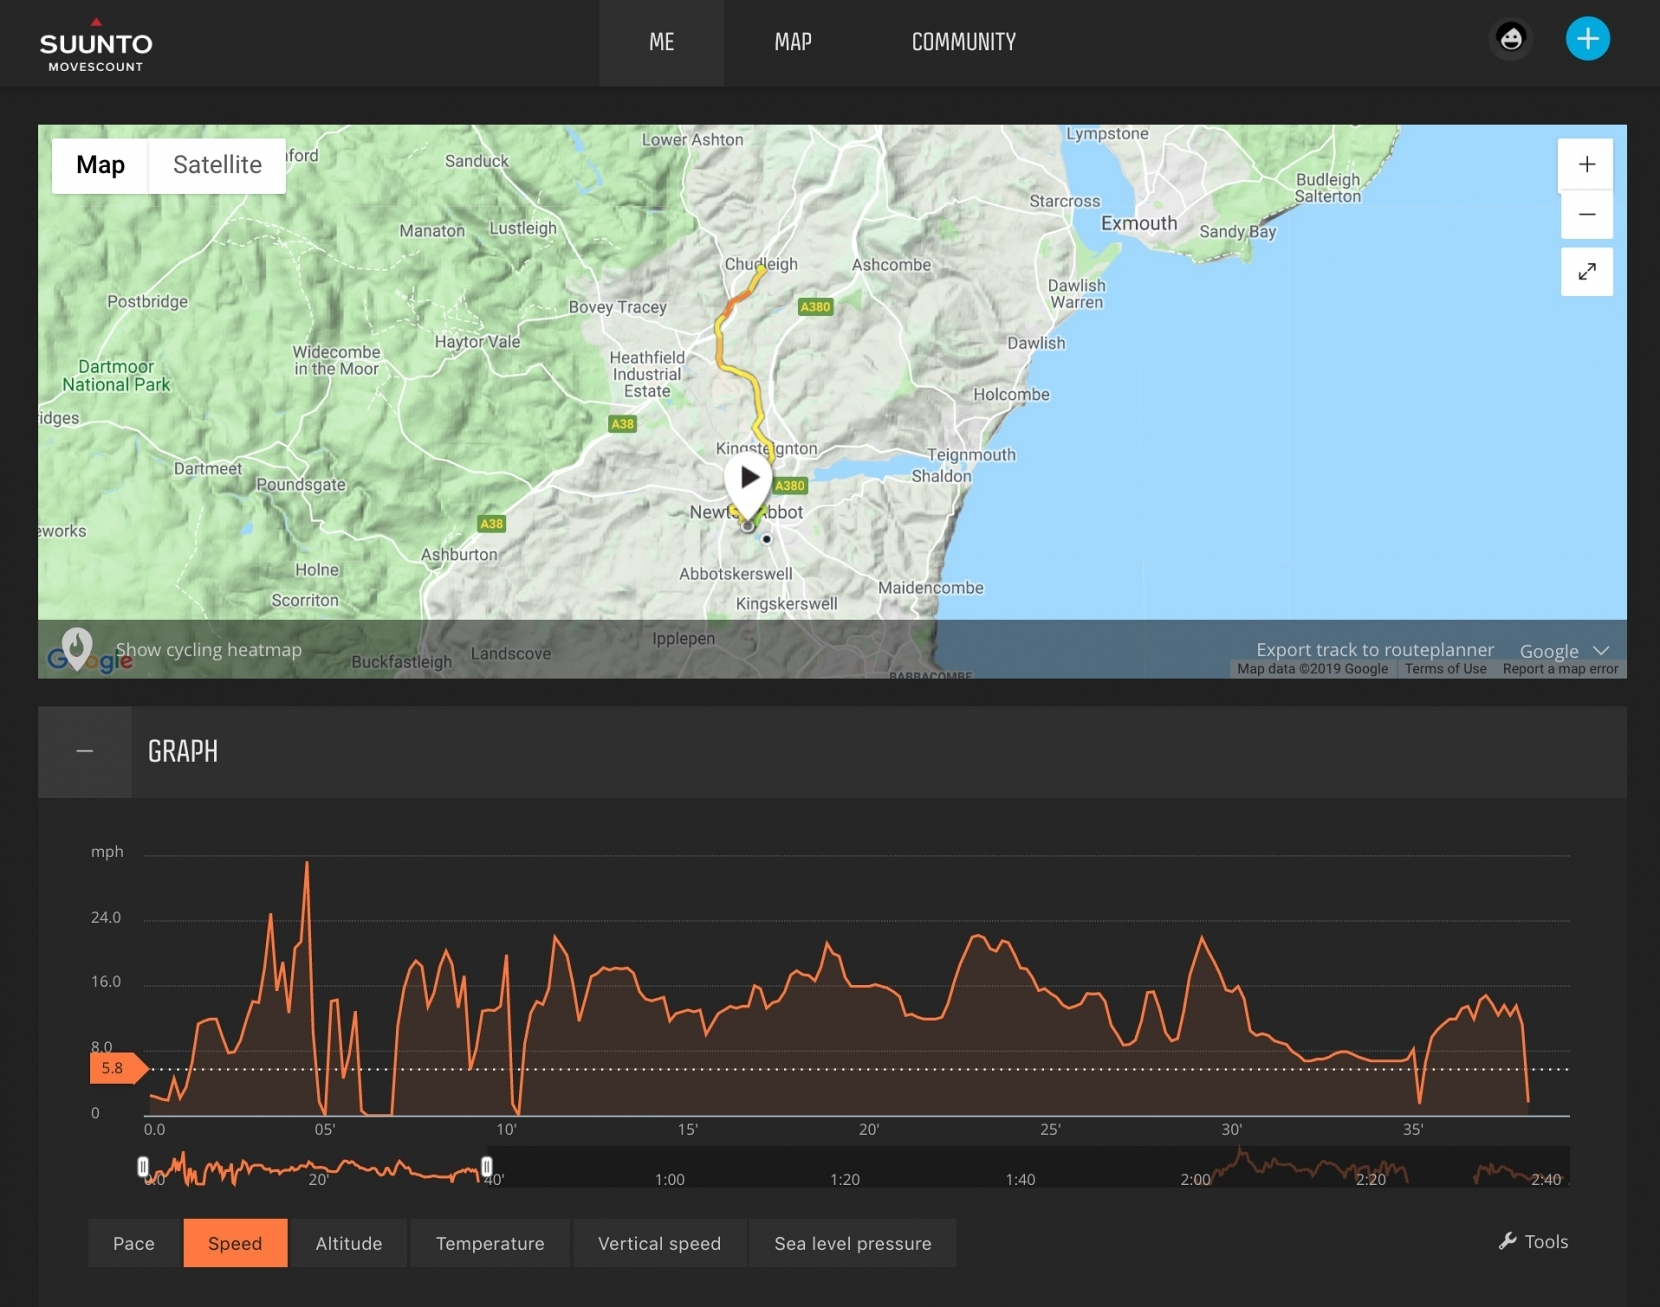 The Movescount Web page - loads of data can help you analyse your GPS moves